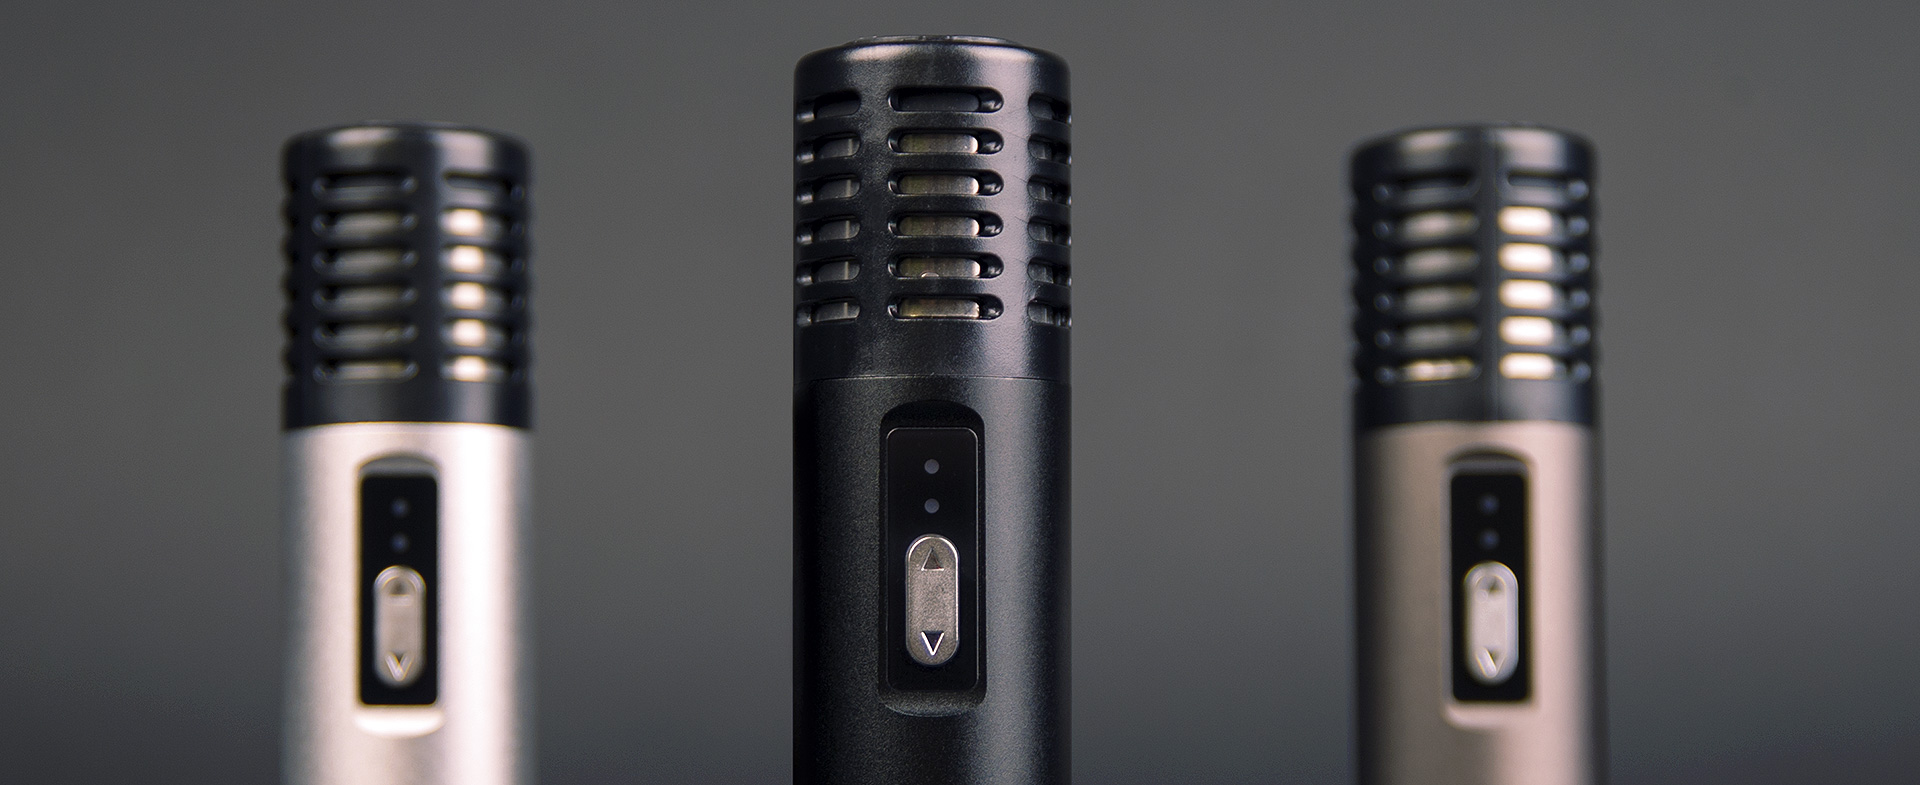 Arizer Air 2 vaporizer news